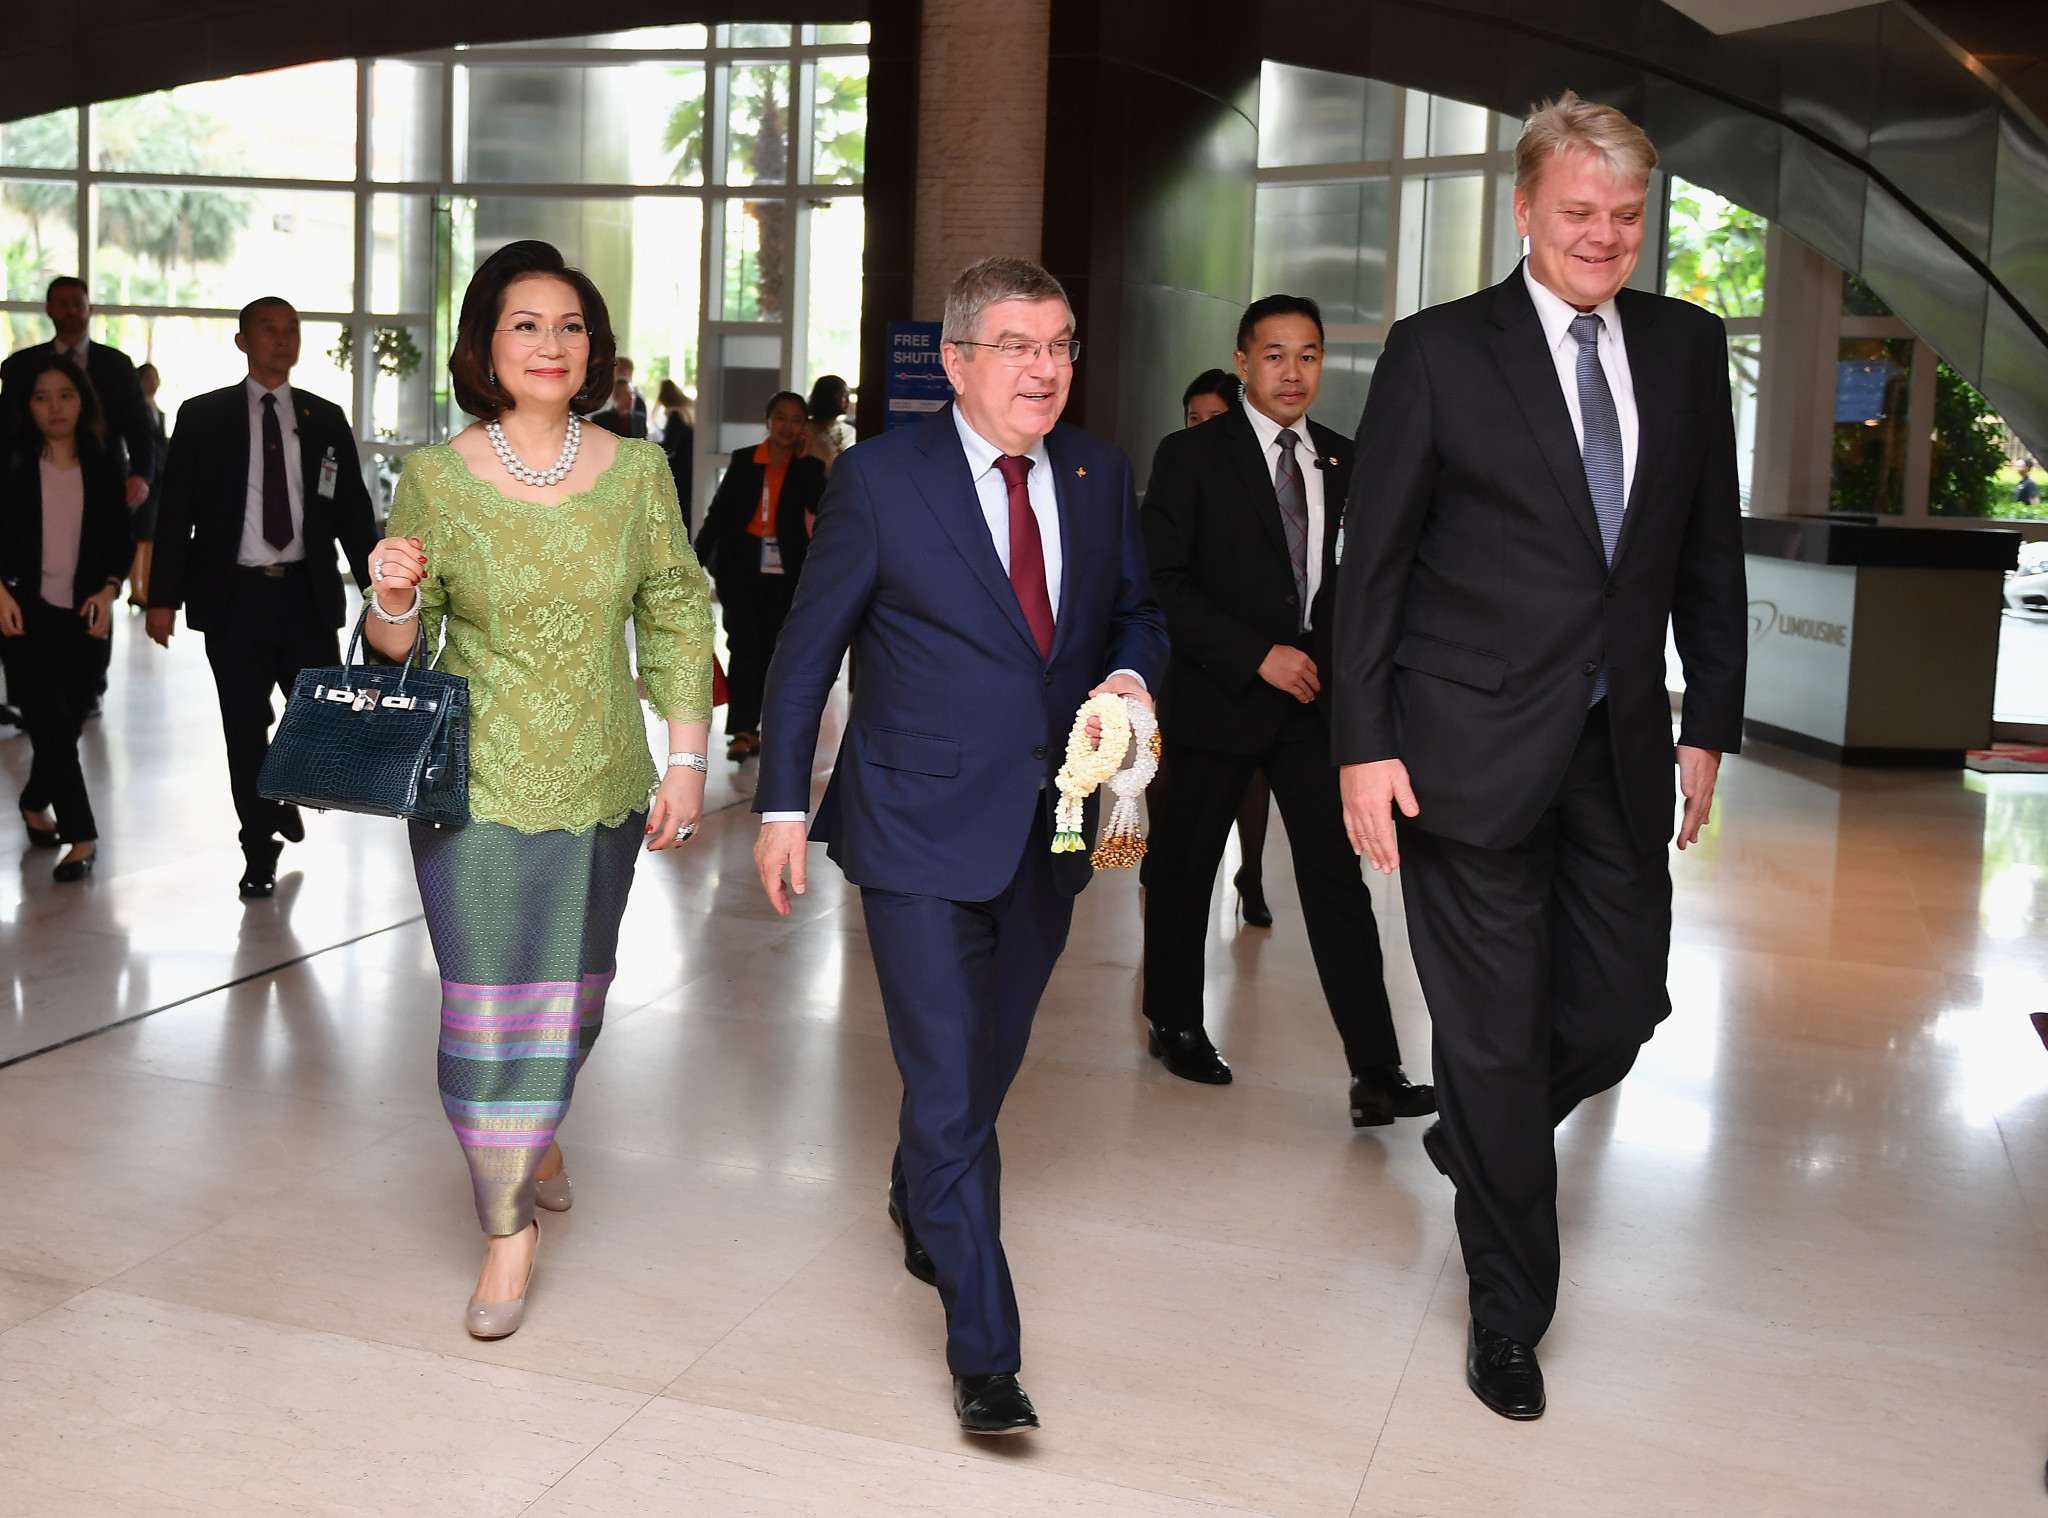 International Olympic Committee (IOC) President Thomas Bach arrived in Bangkok on day one of SportAccord Summit in Thailand's capital ©Getty Images